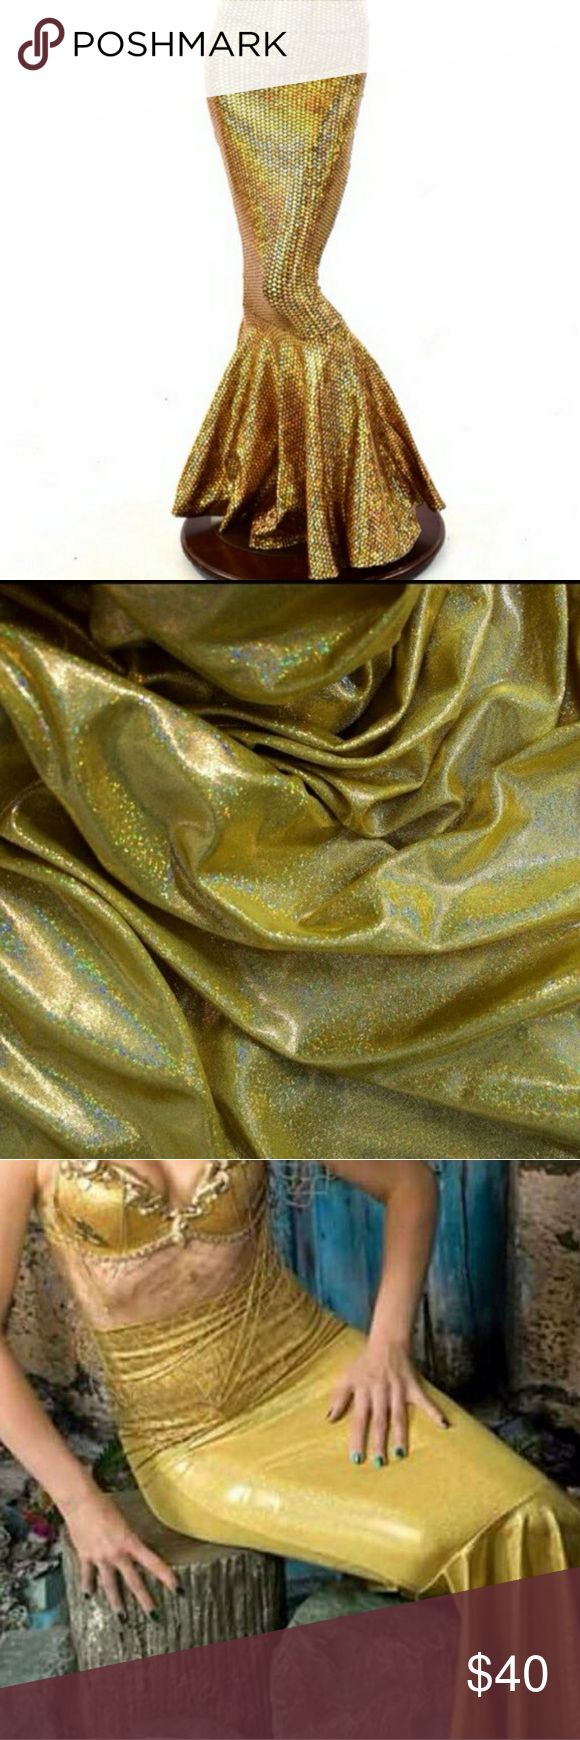 """Gold Fish Mermaid skirt Lycra spandex size M Halloween  High Waist Gold Shimmering Holographic Fish Mermaid Tail Skirt Sirens Hadmade item, size M This gorgeous skirt is made of four way stretch Lycra spandex, comfortable and figureflaunting  Skirt length 42"""" Waist 28""""-31"""" Hips 38""""-40"""" Skirts Maxi"""